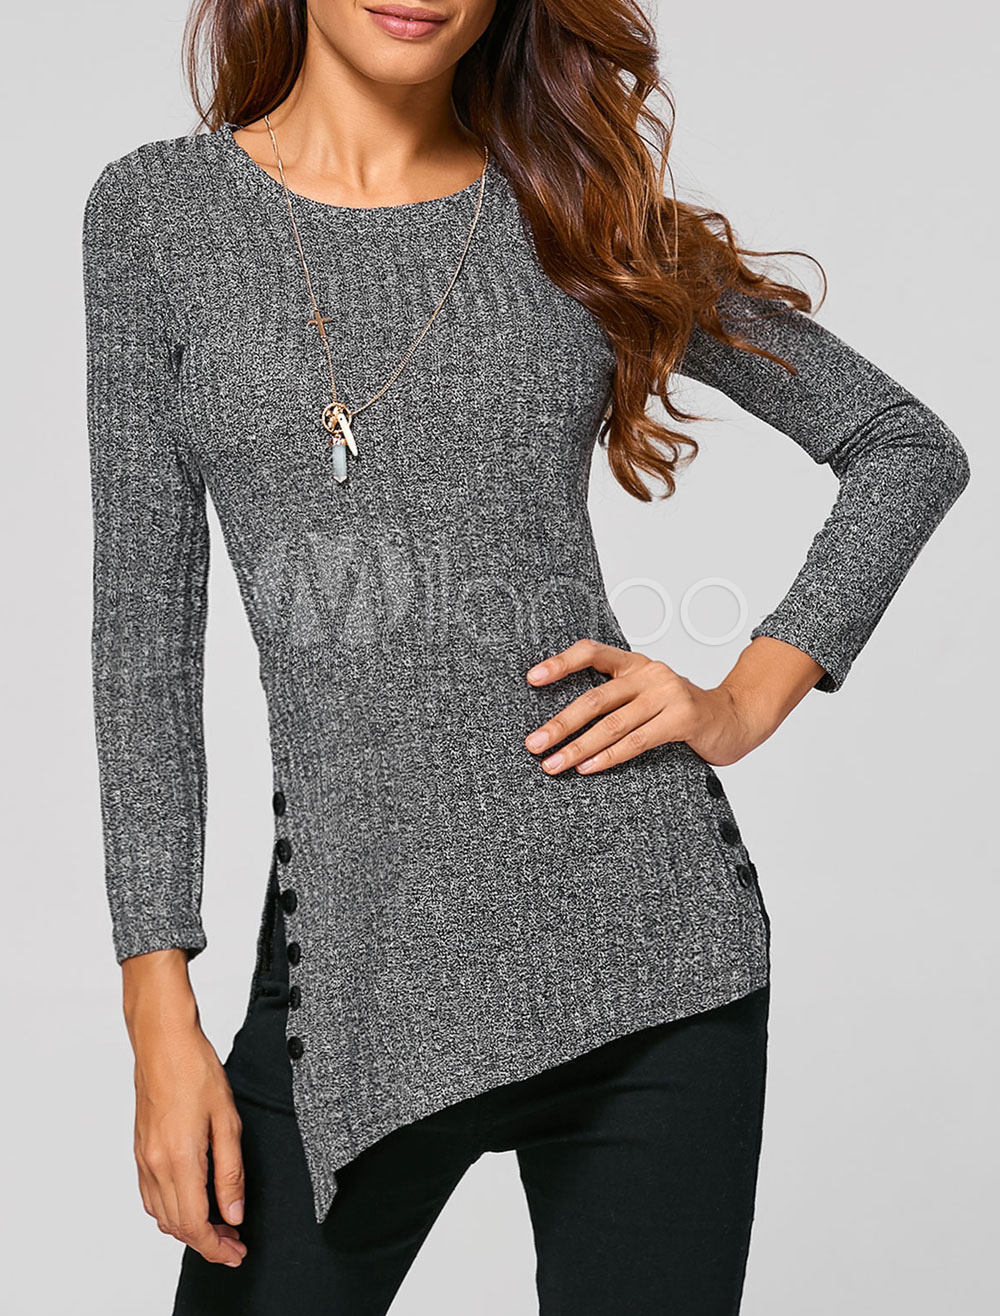 Buy Grey Pullover Sweater Women's Long Sleeve Side Slit Round Neck Knit Sweater for $15.99 in Milanoo store